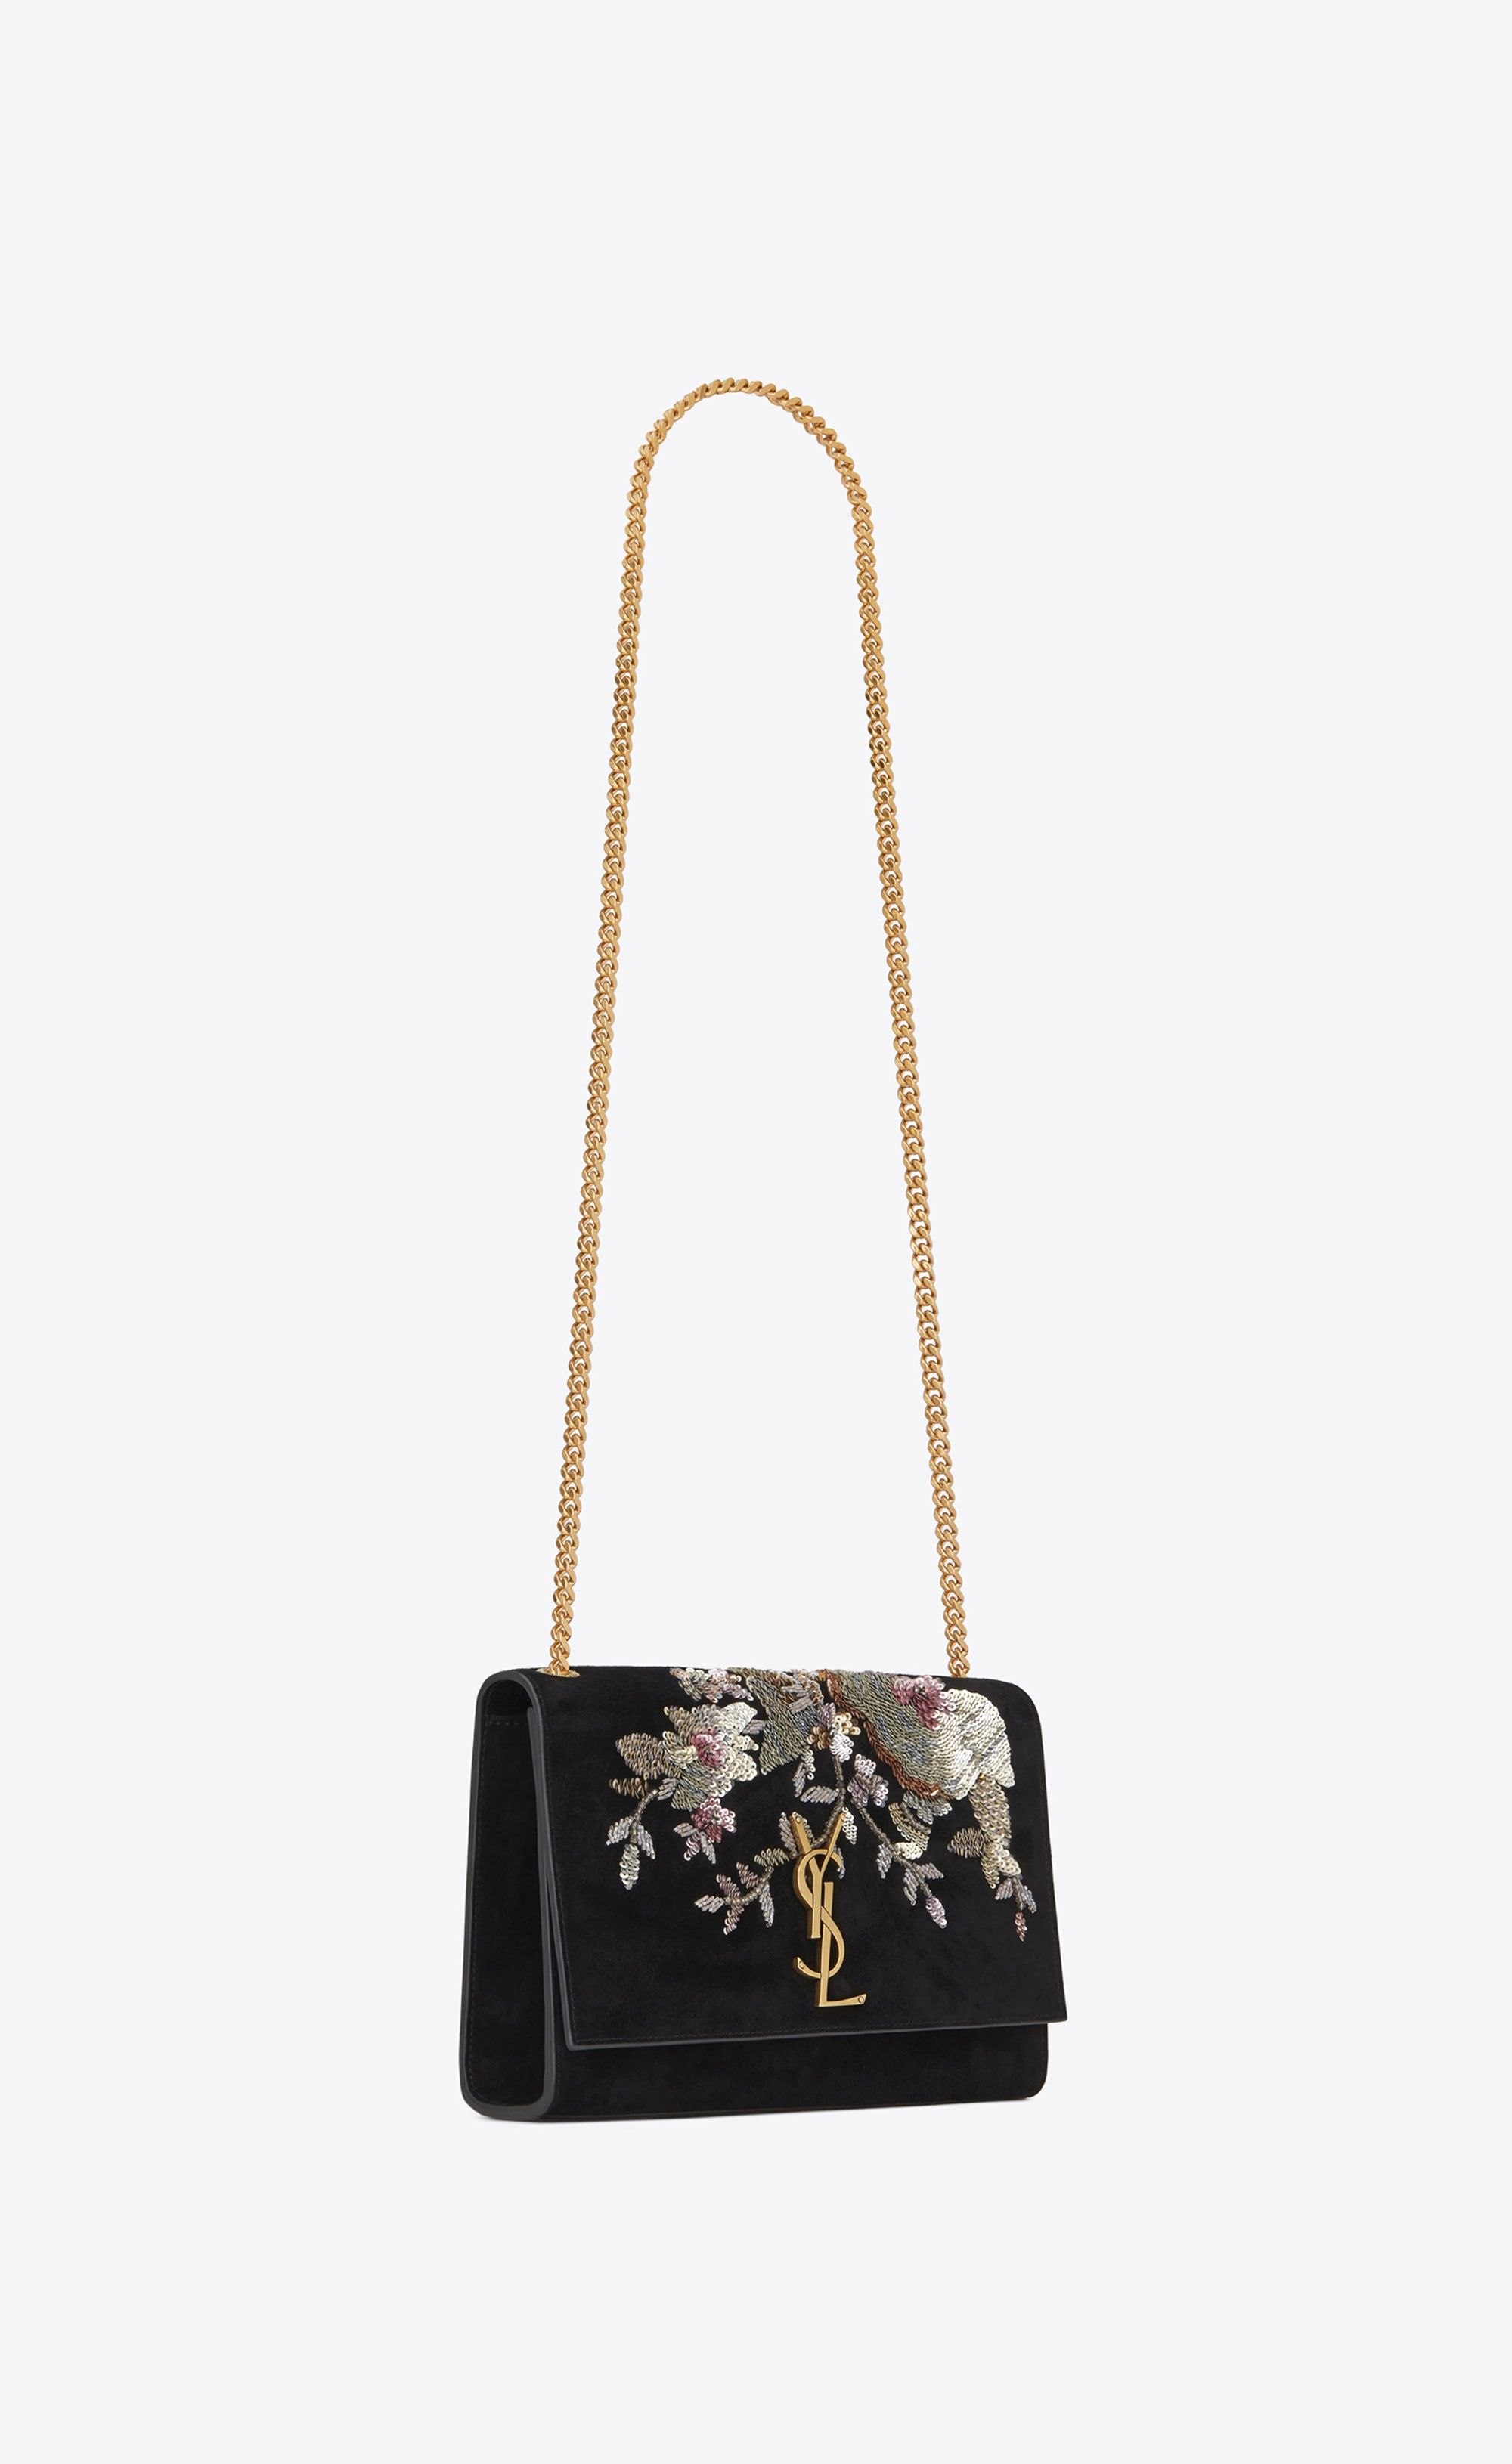 a2459e13f2 Saint Laurent Medium KATE Chain Bag In Black Suede Embroidered With Sequins  And Multicolored Crystals